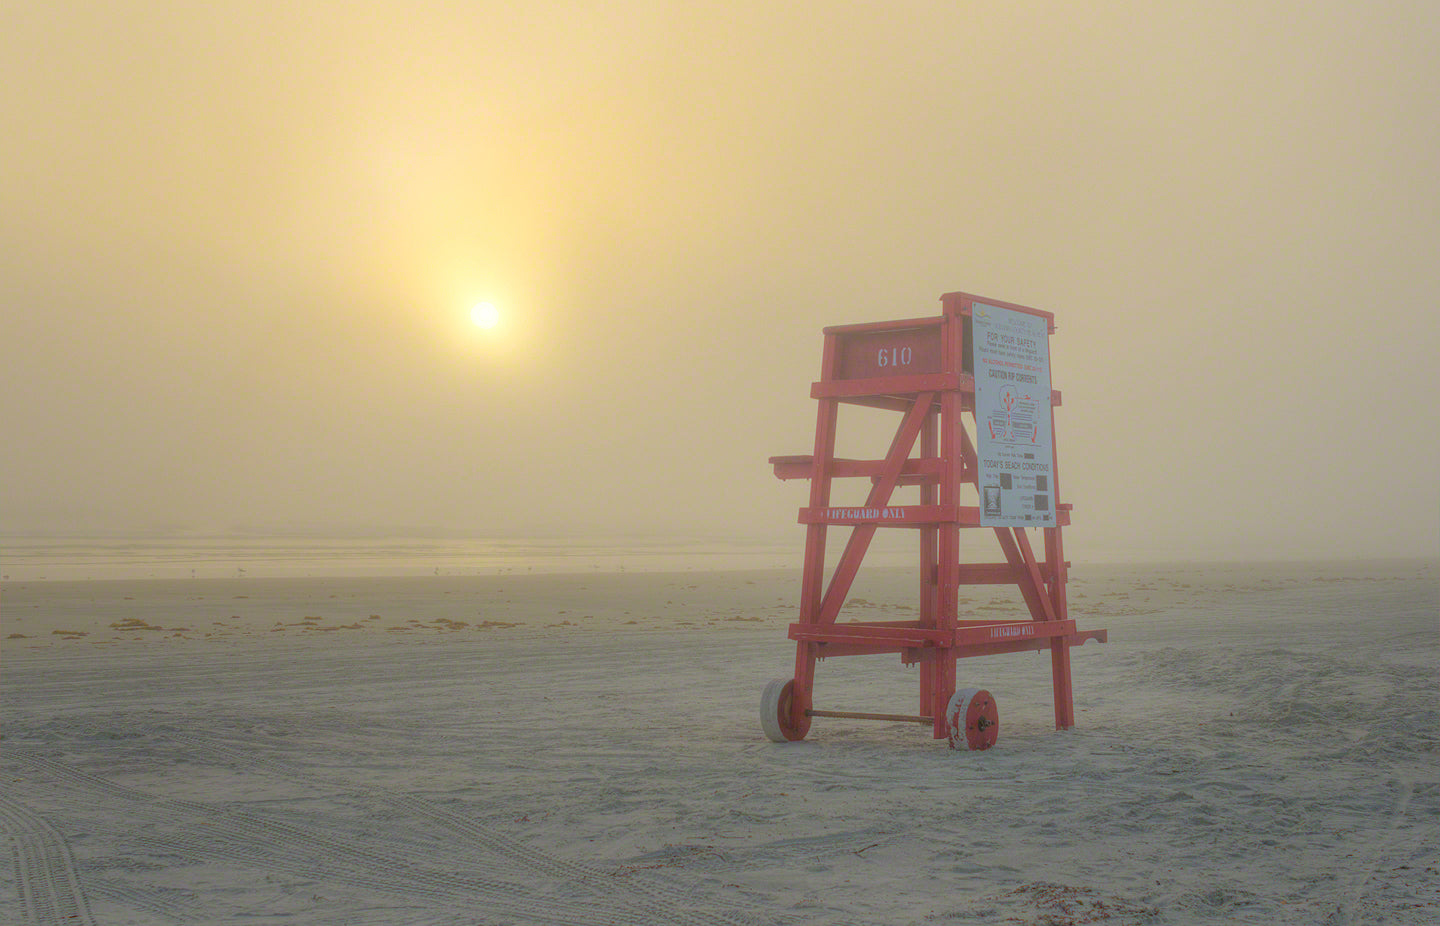 A photo of a red life guard stand on the beach